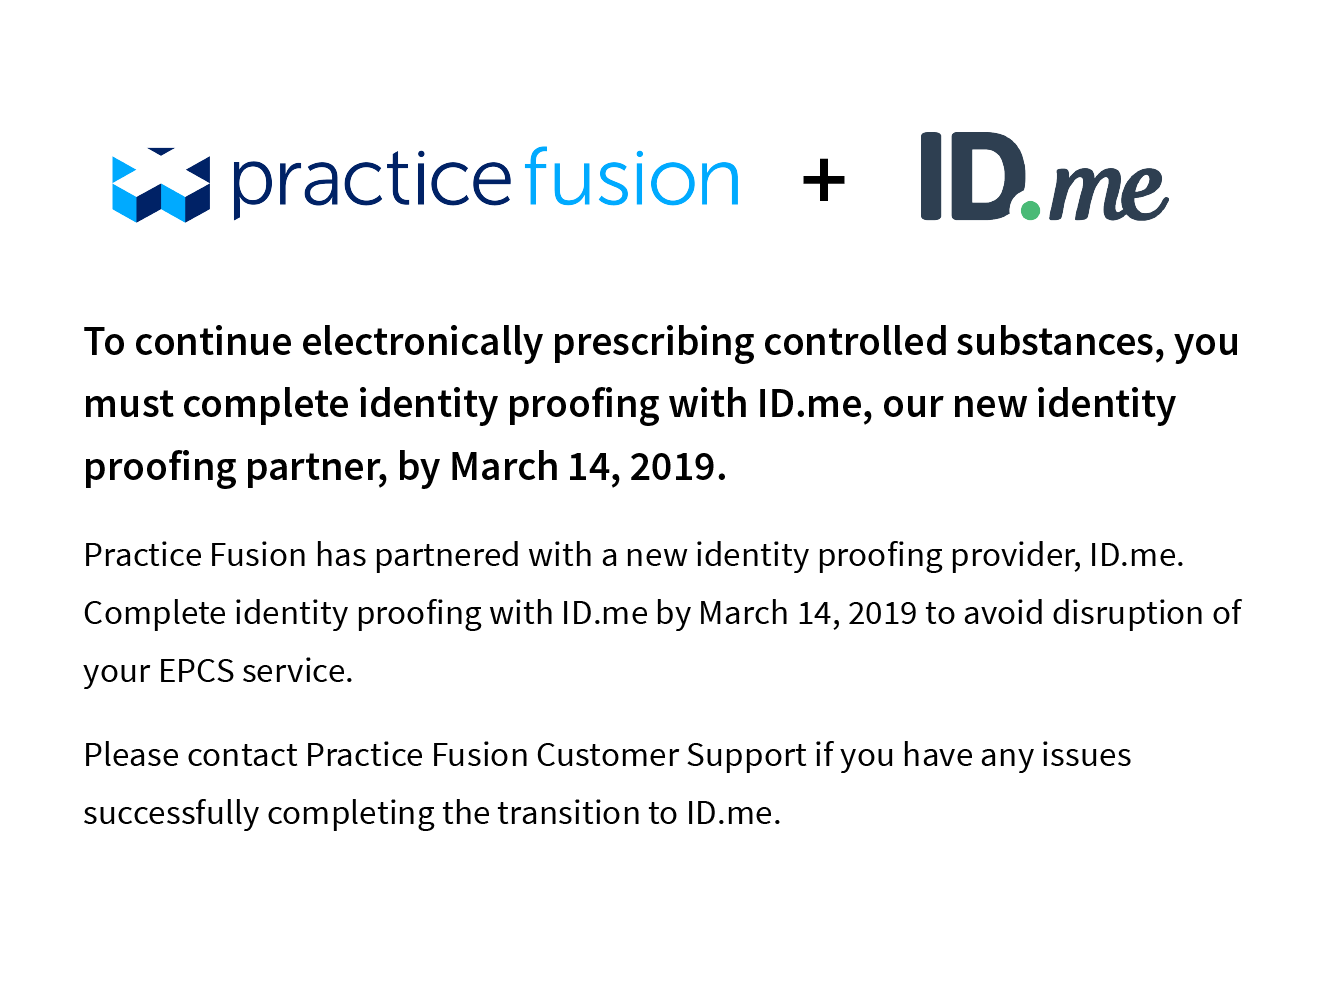 To continue electronically prescribing controlled substances, you must complete identity proofing with ID.me, our new identity proofing partner, by March 14,2019. Practice Fusion has partnered with a new identity proofing provider, ID.me. Compplete identity proofing with ID.me by March 14 to avoid disruption to your EPCS service. Please contact Customer Support if you have any issues successfully comnplete the transition to ID.me.